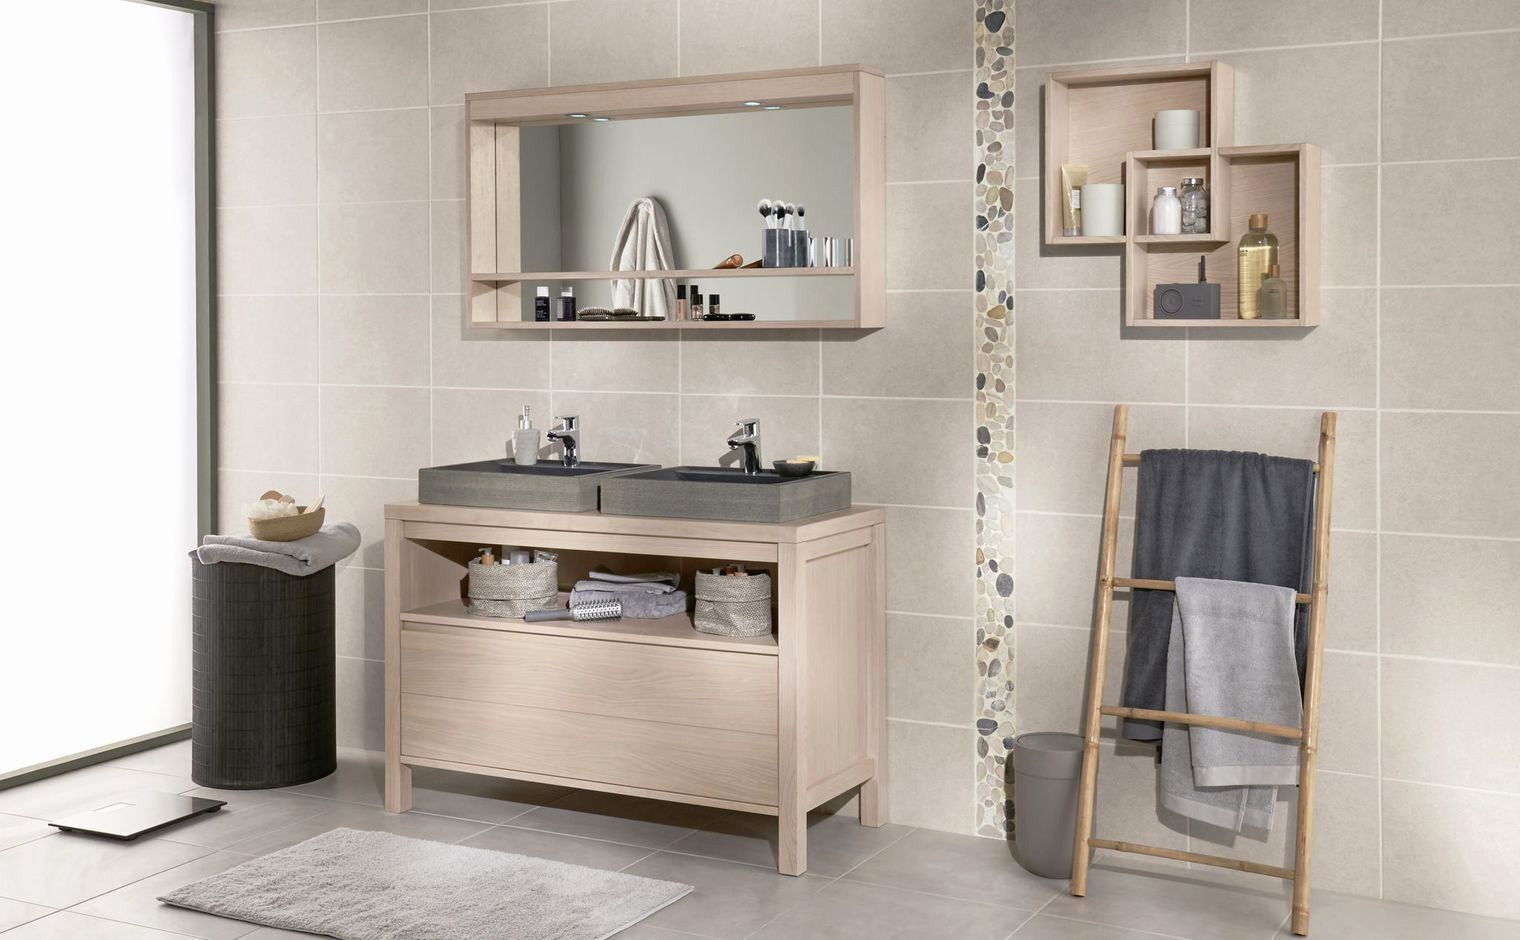 28 Luxe Salle De Bain Conforama Sous Vasque Bathroom Vanity Bathroom Vanity Units Bathroom Units